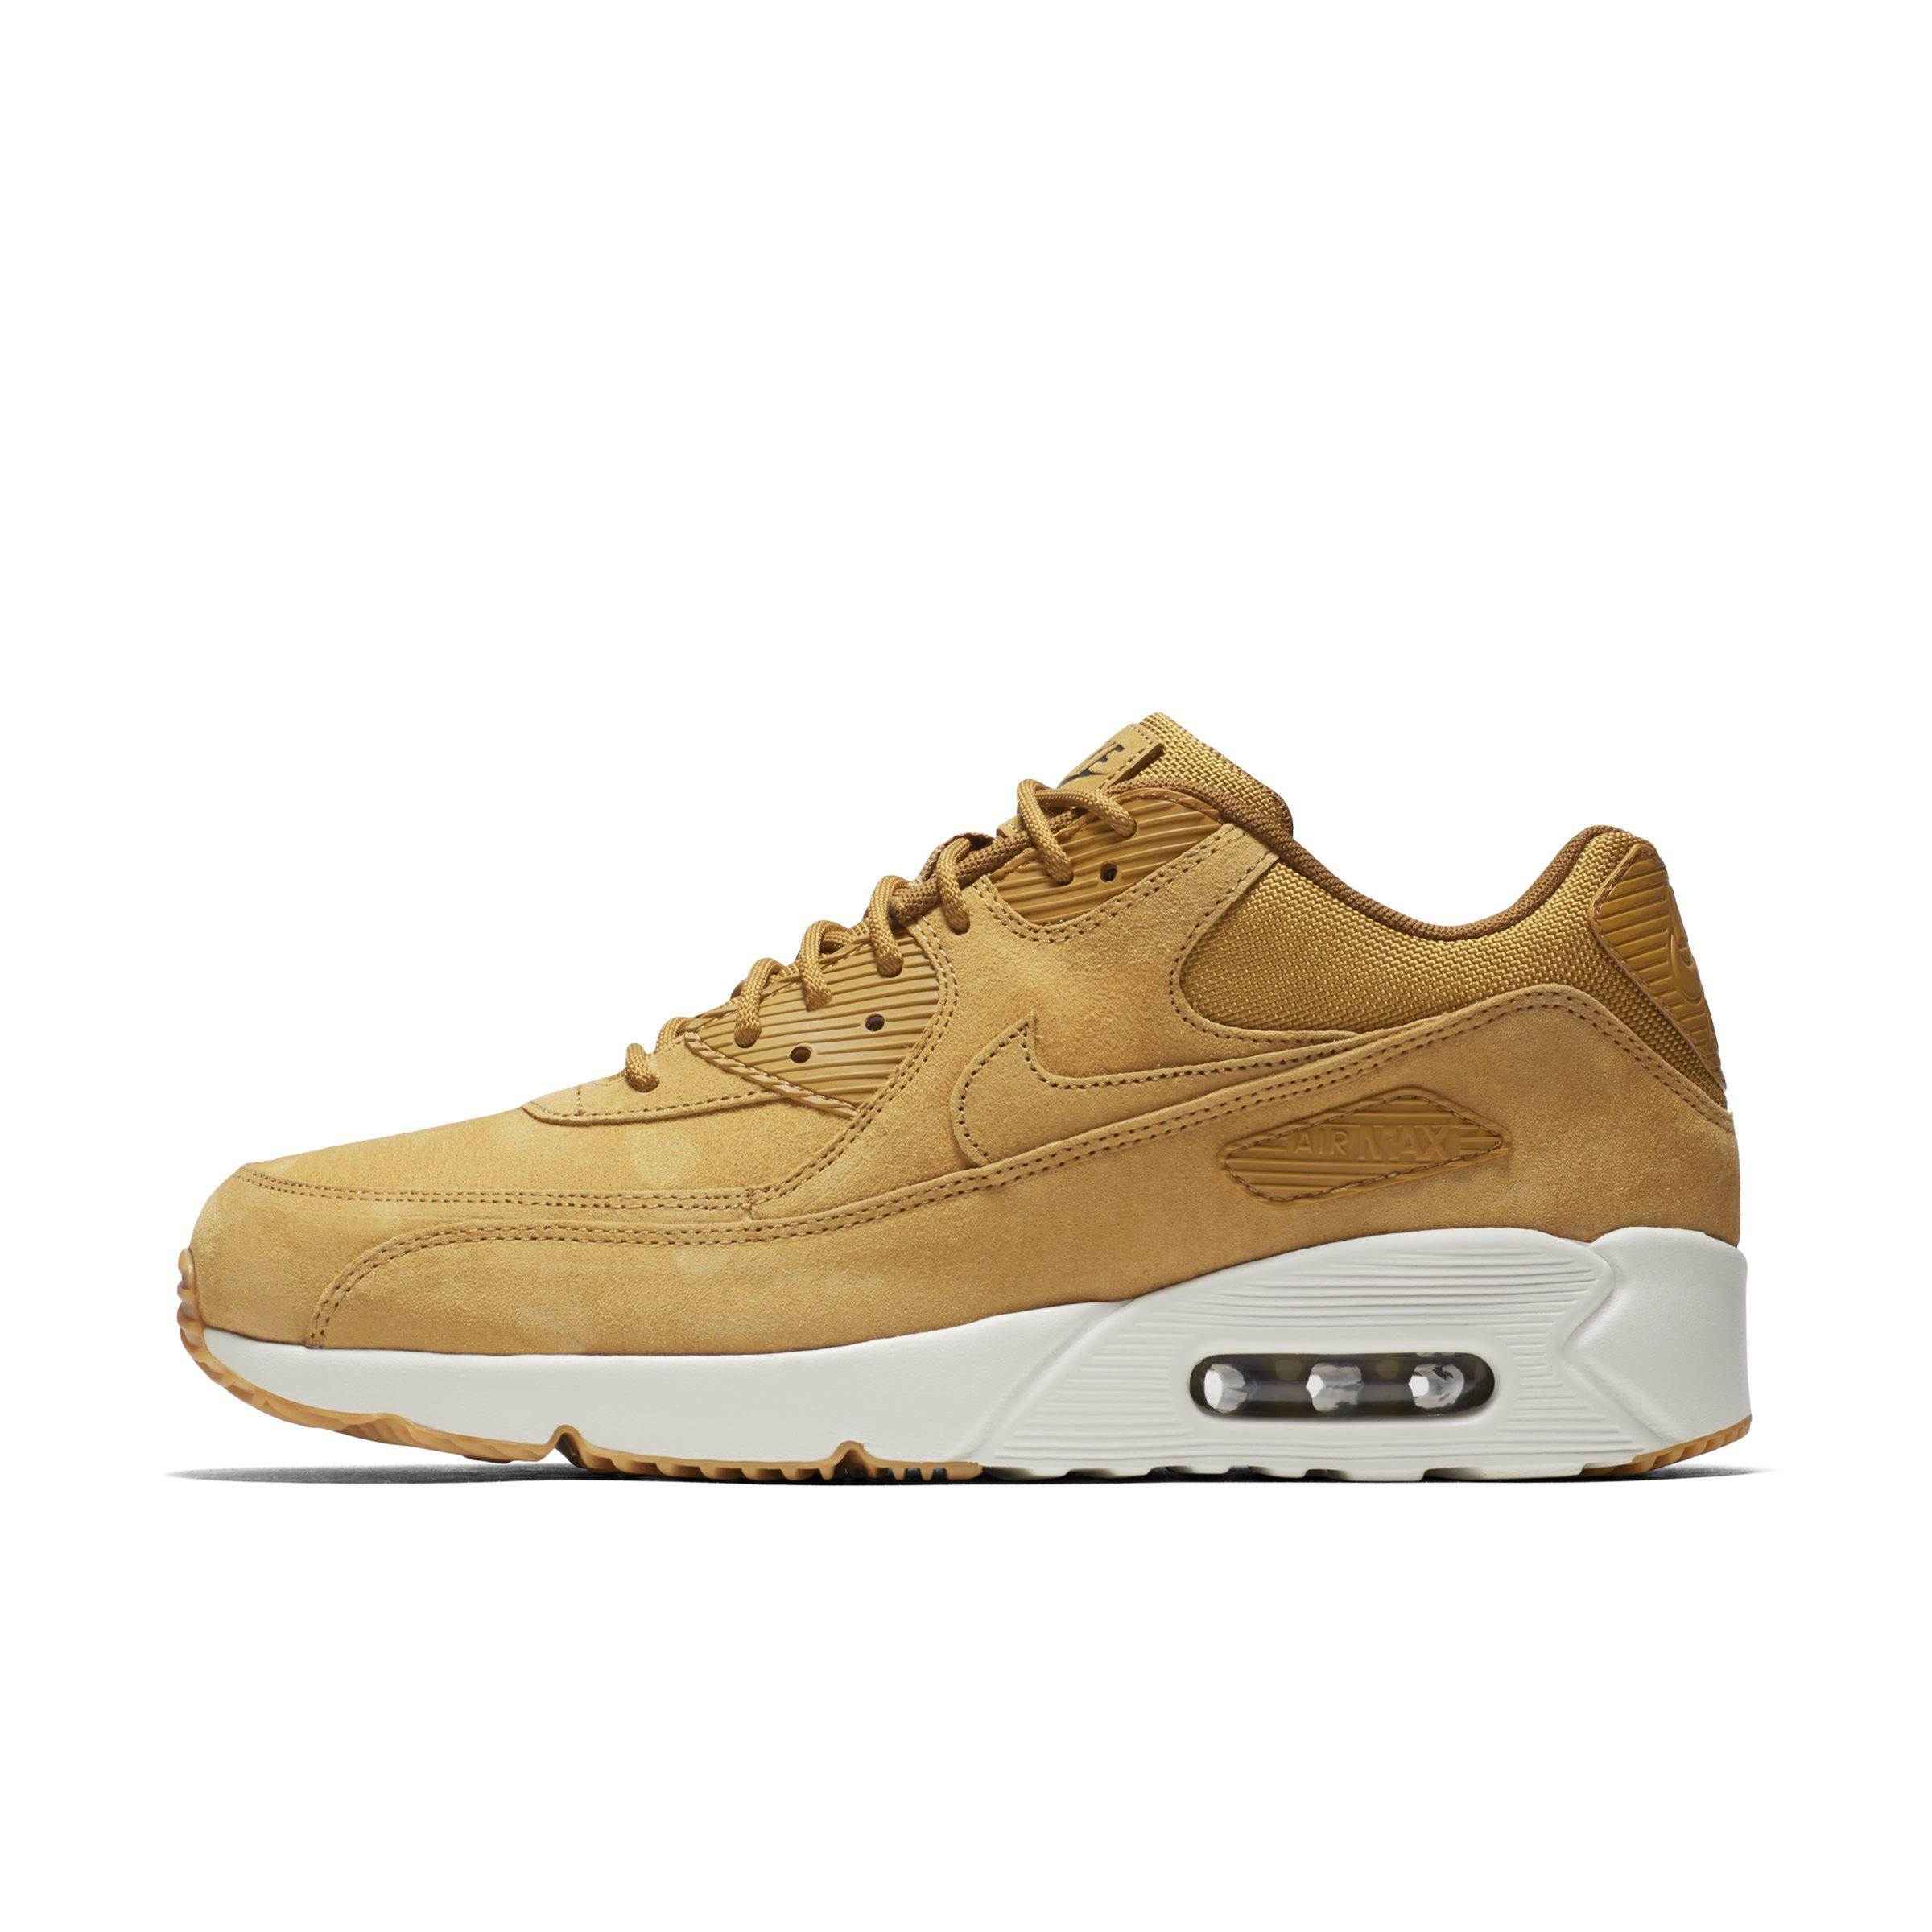 new style 3e911 cf0d6 Nike - Brown Air Max 90 Ultra 2.0 for Men - Lyst. View fullscreen